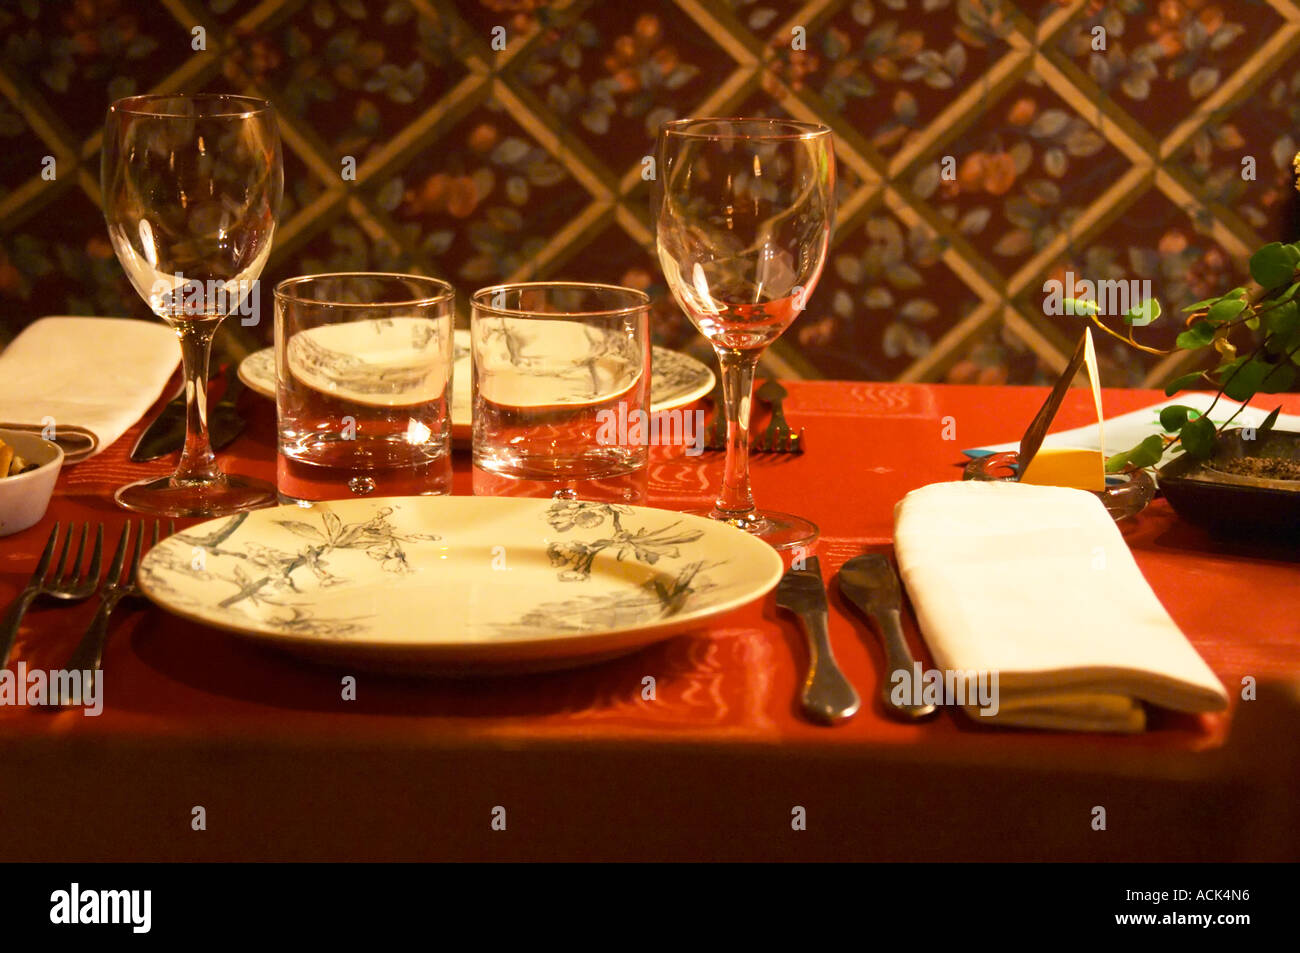 at a table set for two